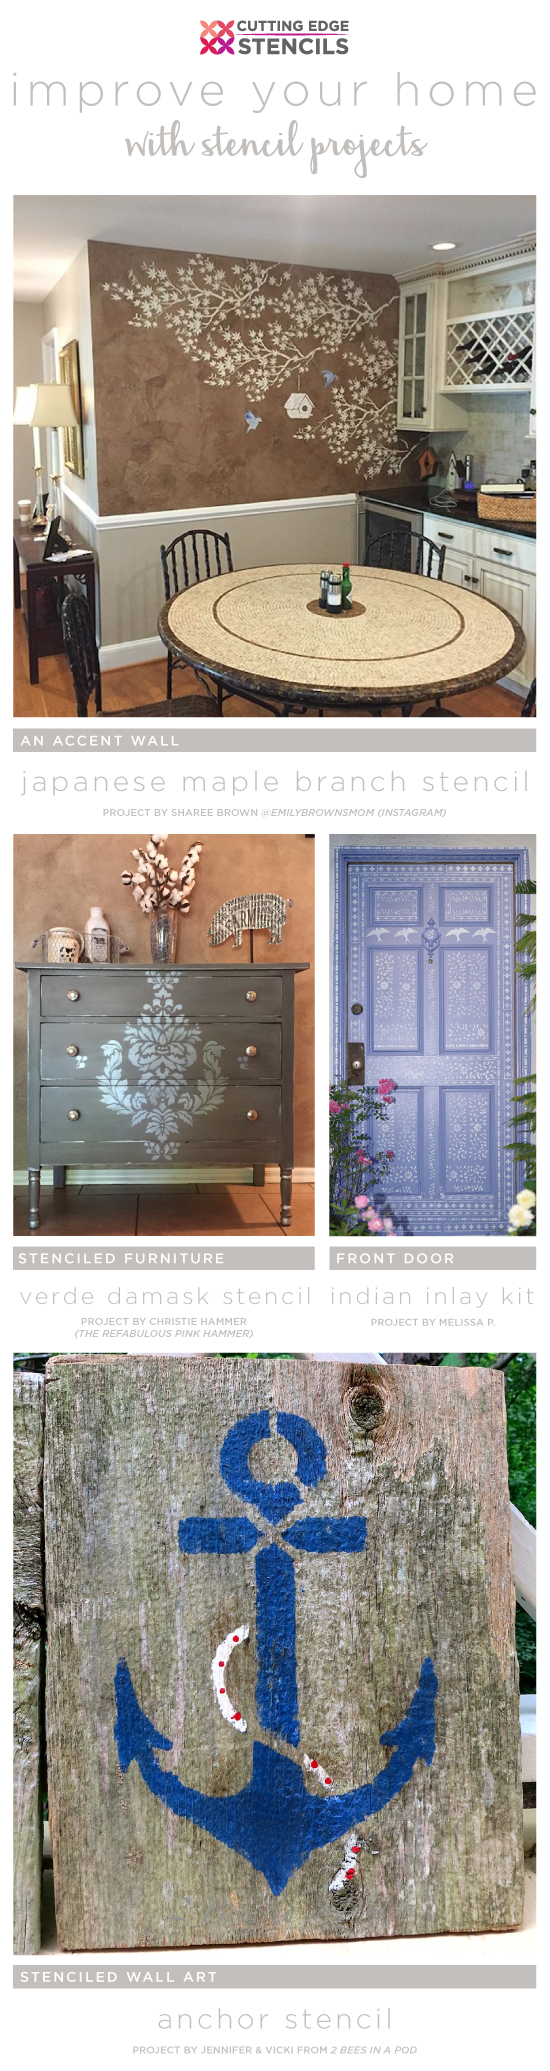 Cutting Edge Stencils shares simple and inexpensive DIY projects to spruce up a home using stencils. http://www.cuttingedgestencils.com/wall-stencils-stencil-designs.html